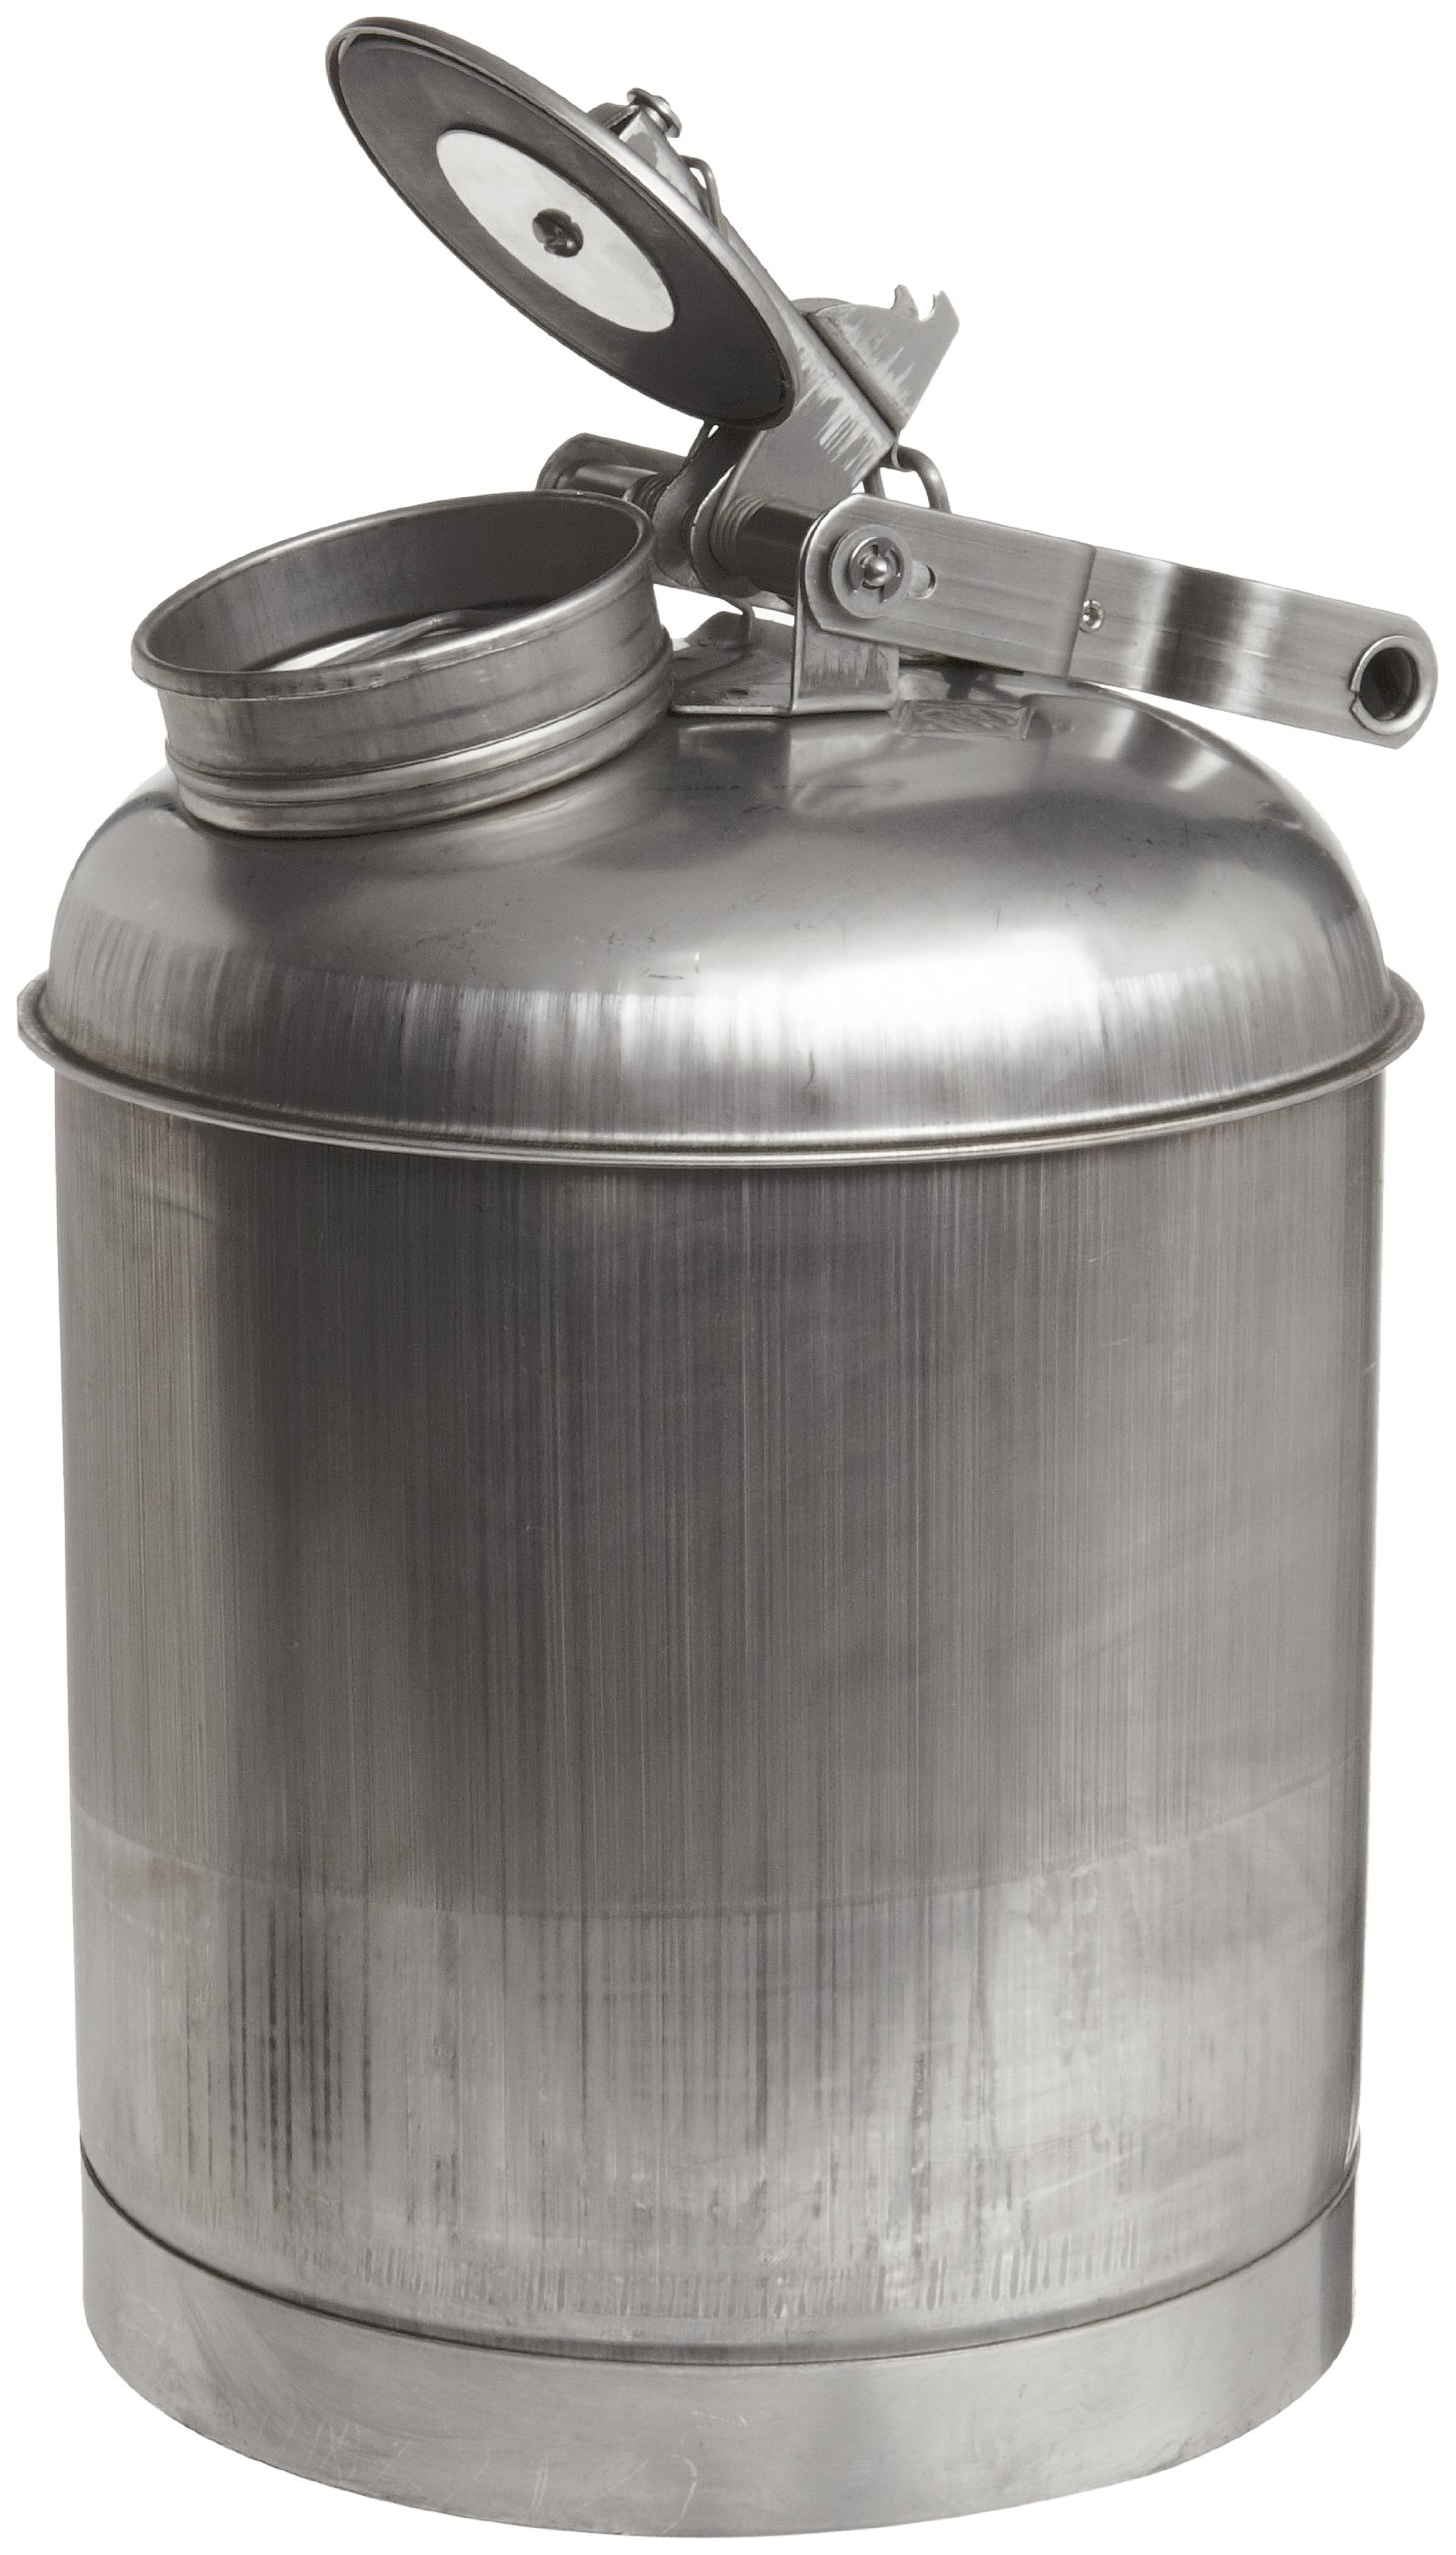 Eagle 1325  Stainless Steel 316 Disposal Safety Can, 5 Gallon Capacity, Silver